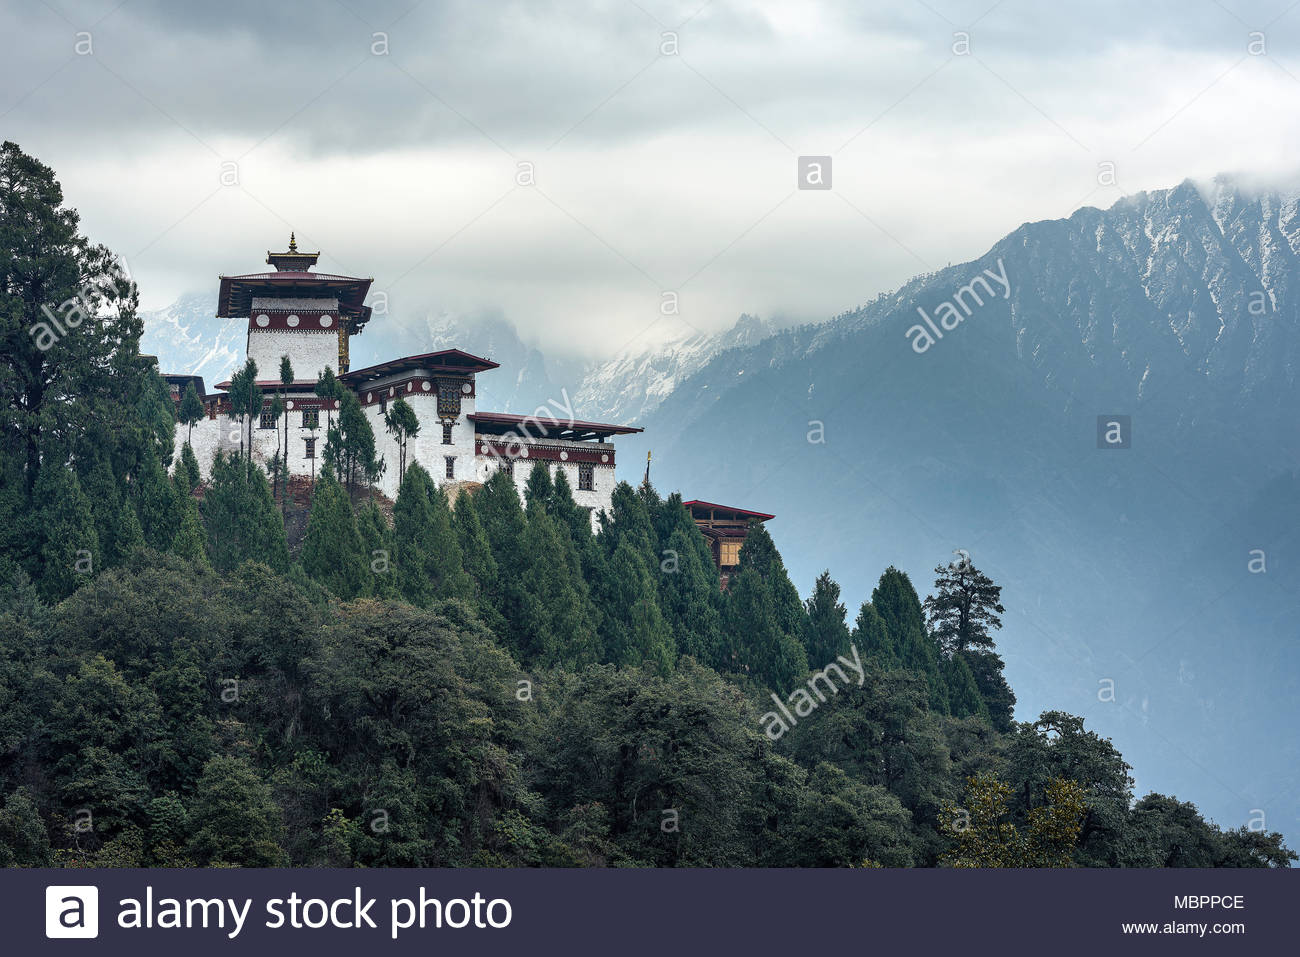 View of the remote Gasa Dzong on a cloudy day in March, Bhutan. The monastery is famous for it's architecture and festivals (tcheshu). Stock Photo